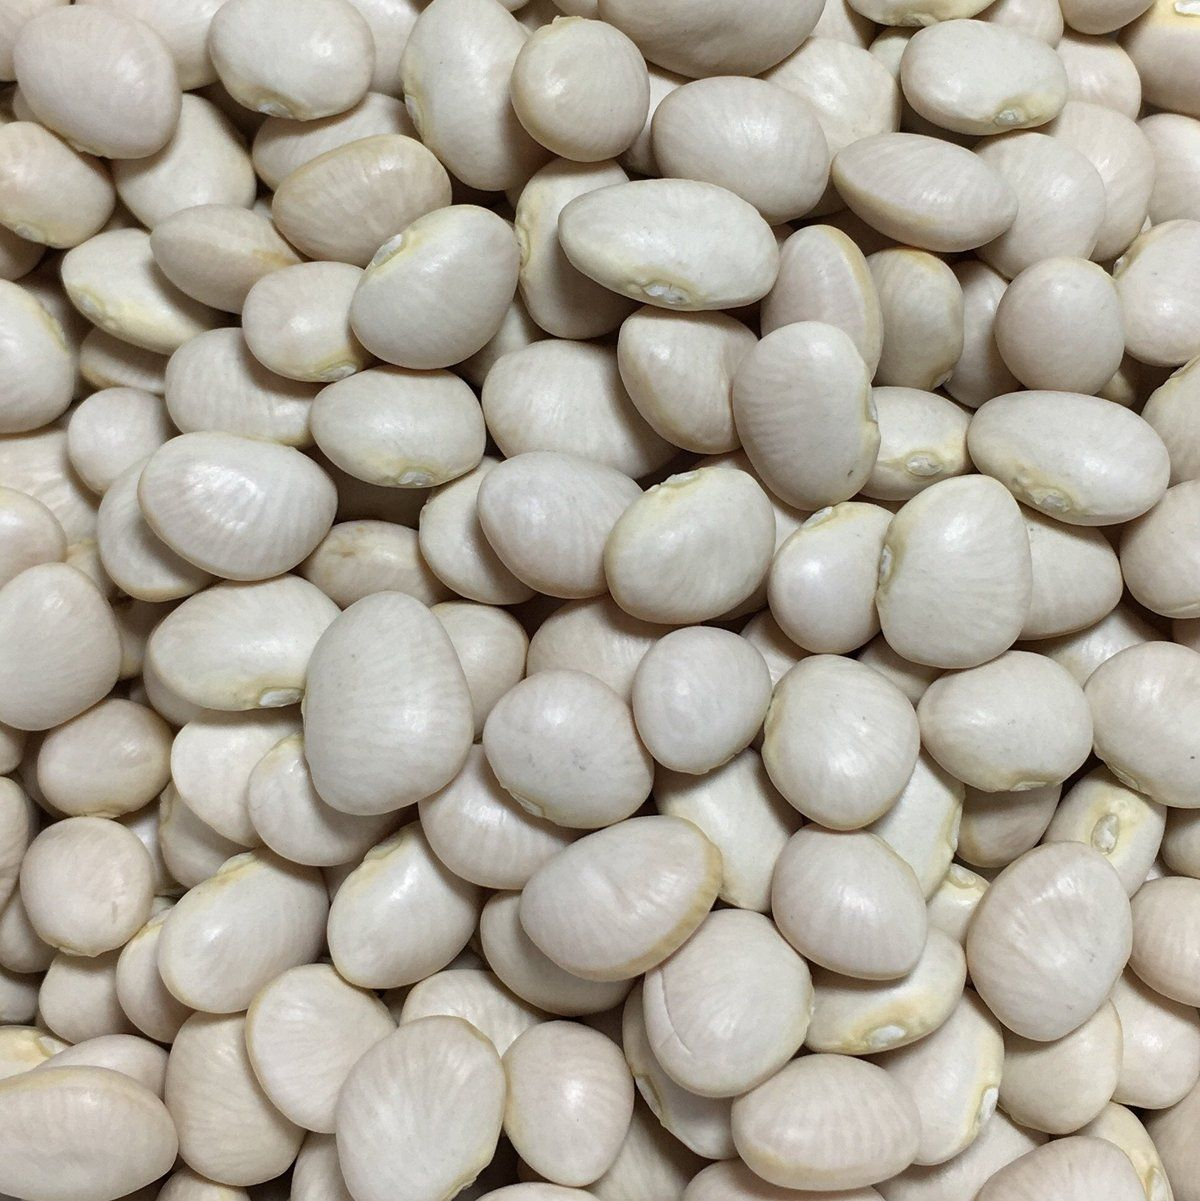 Our Open Pollinated Heirloom Bean Pole Lima White Dixie Butter Pea Phaseolus Vulgaris Seeds Are Guaranteed To Be Non Gmo Beans Pea Beans Bean Varieties